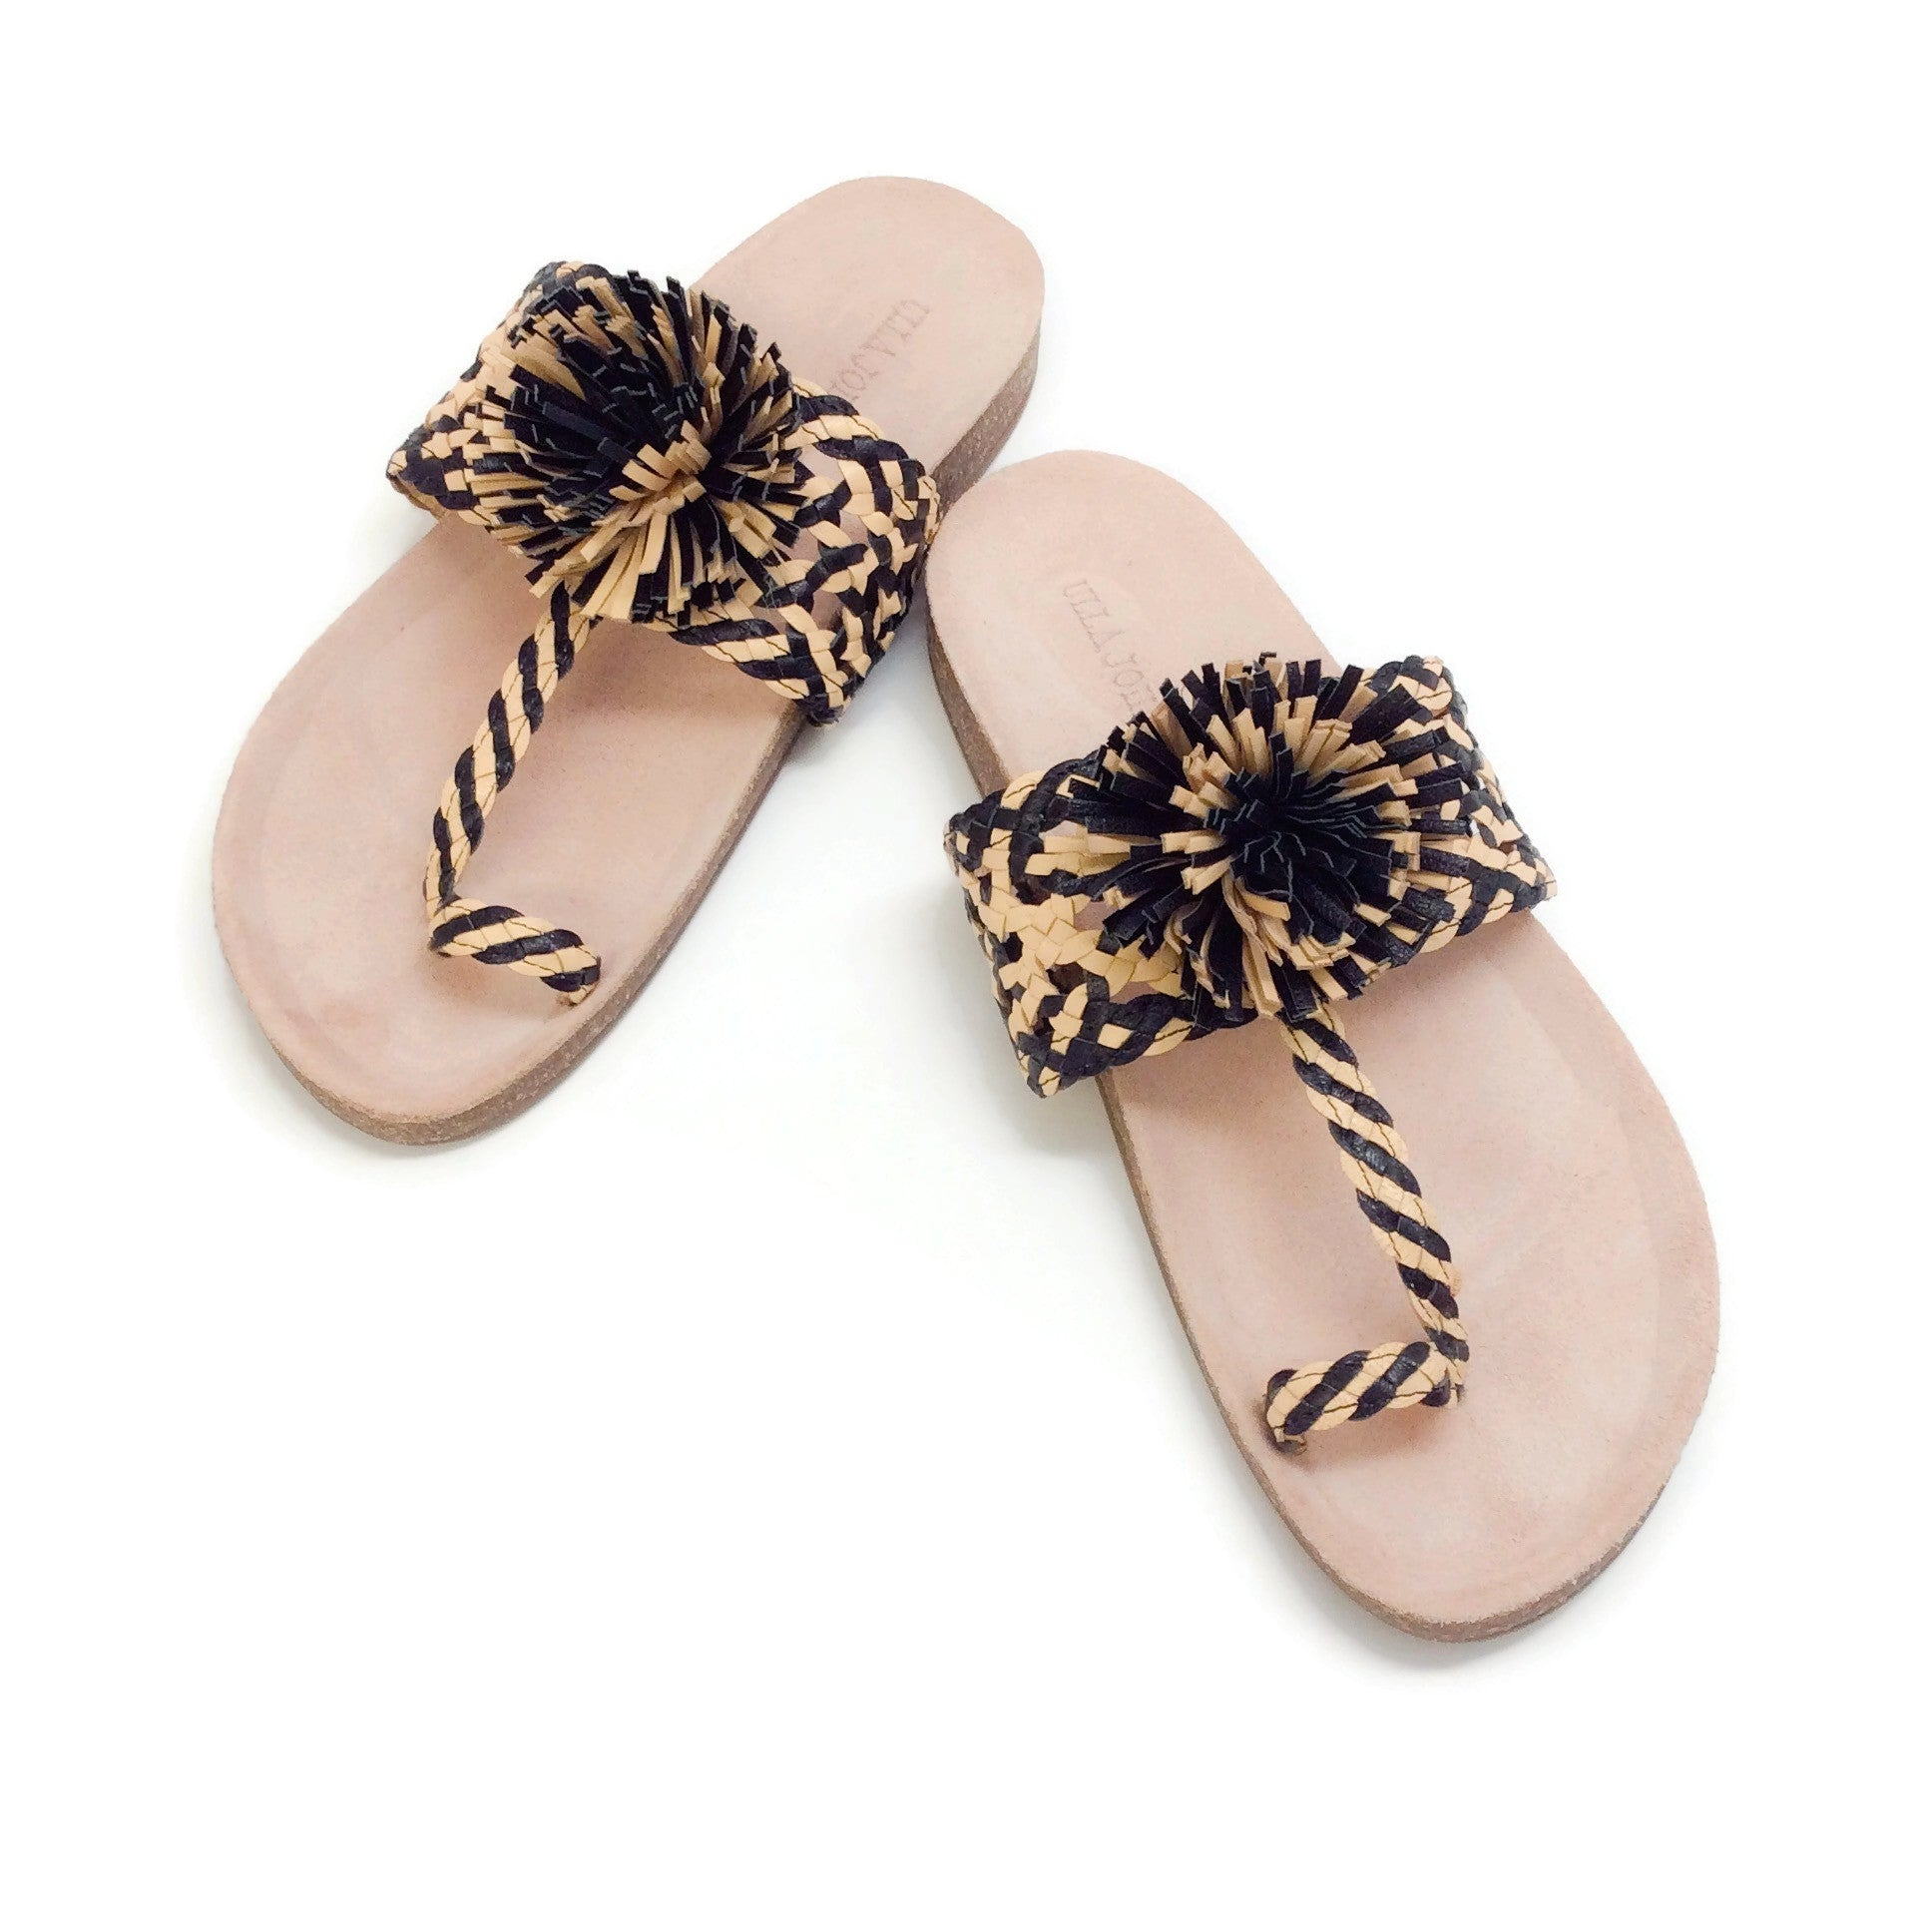 Ulla Johnson Black / Natural Netta Sandals